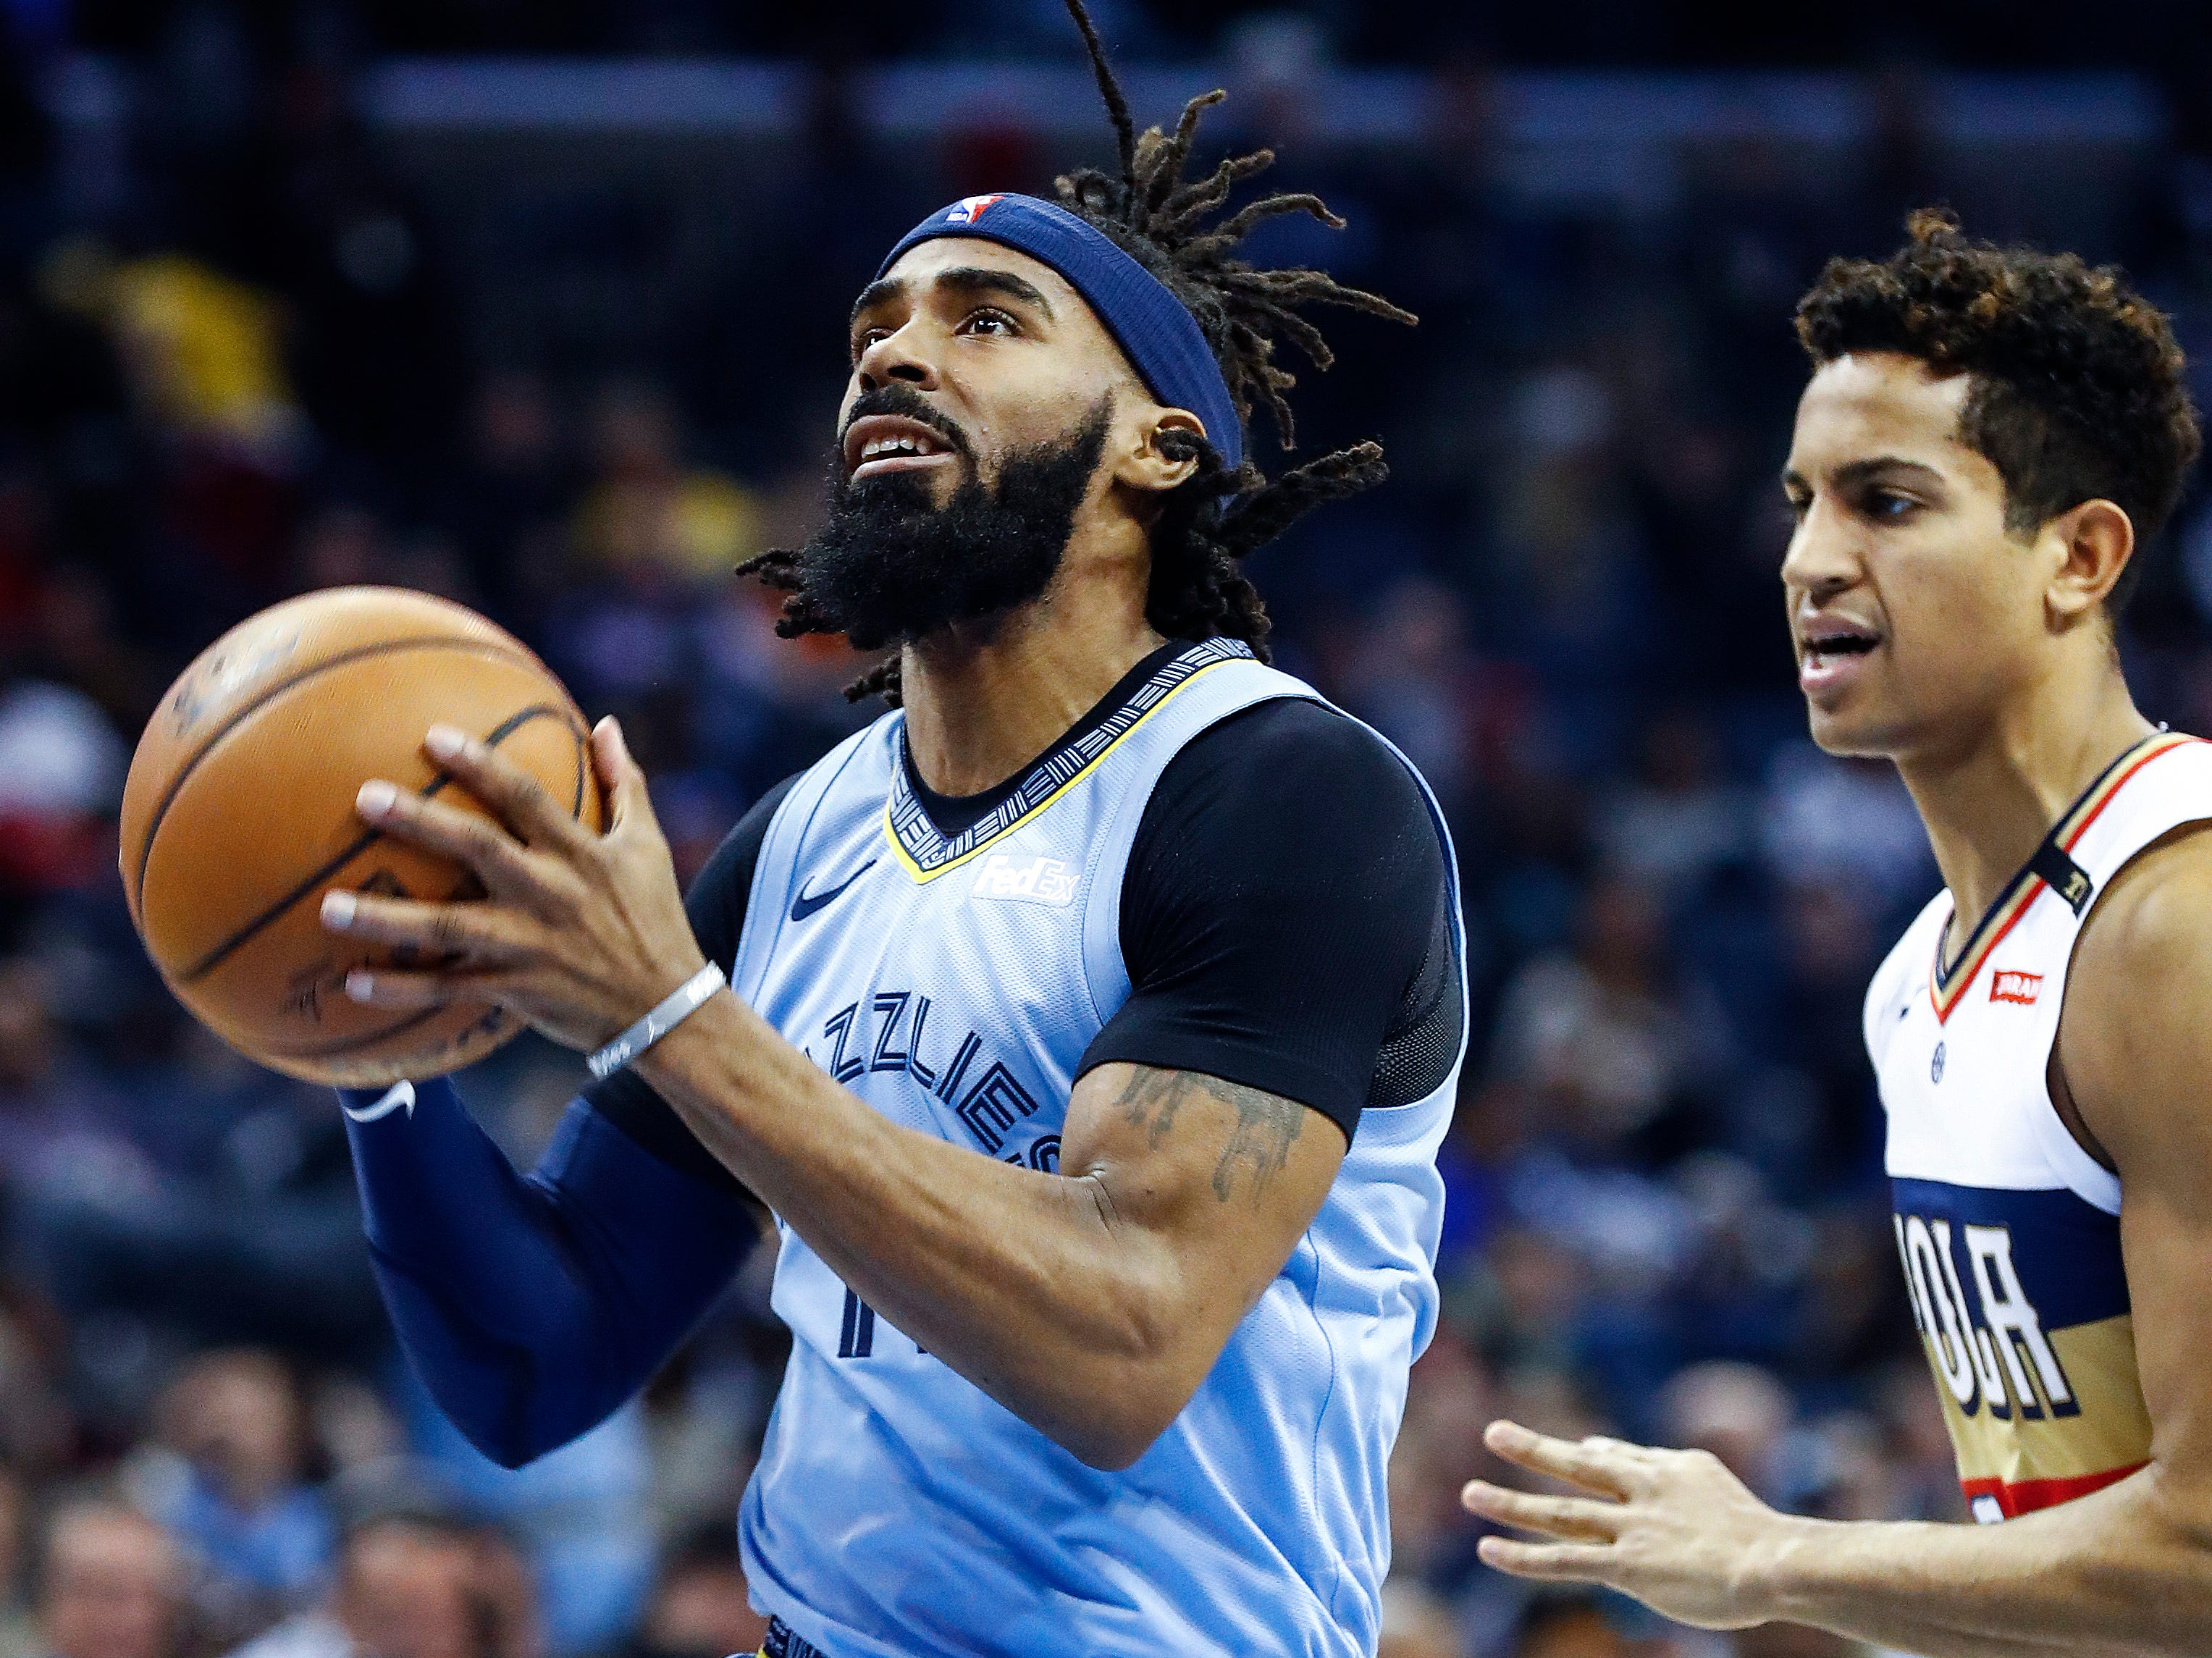 Memphis Grizzlies guard Mike Conley (left) drives the lane against New Orleans Pelicans defender Frank Jackson (right) during action at the FedExForum in Memphis, Tenn., Monday, January 21, 2019.